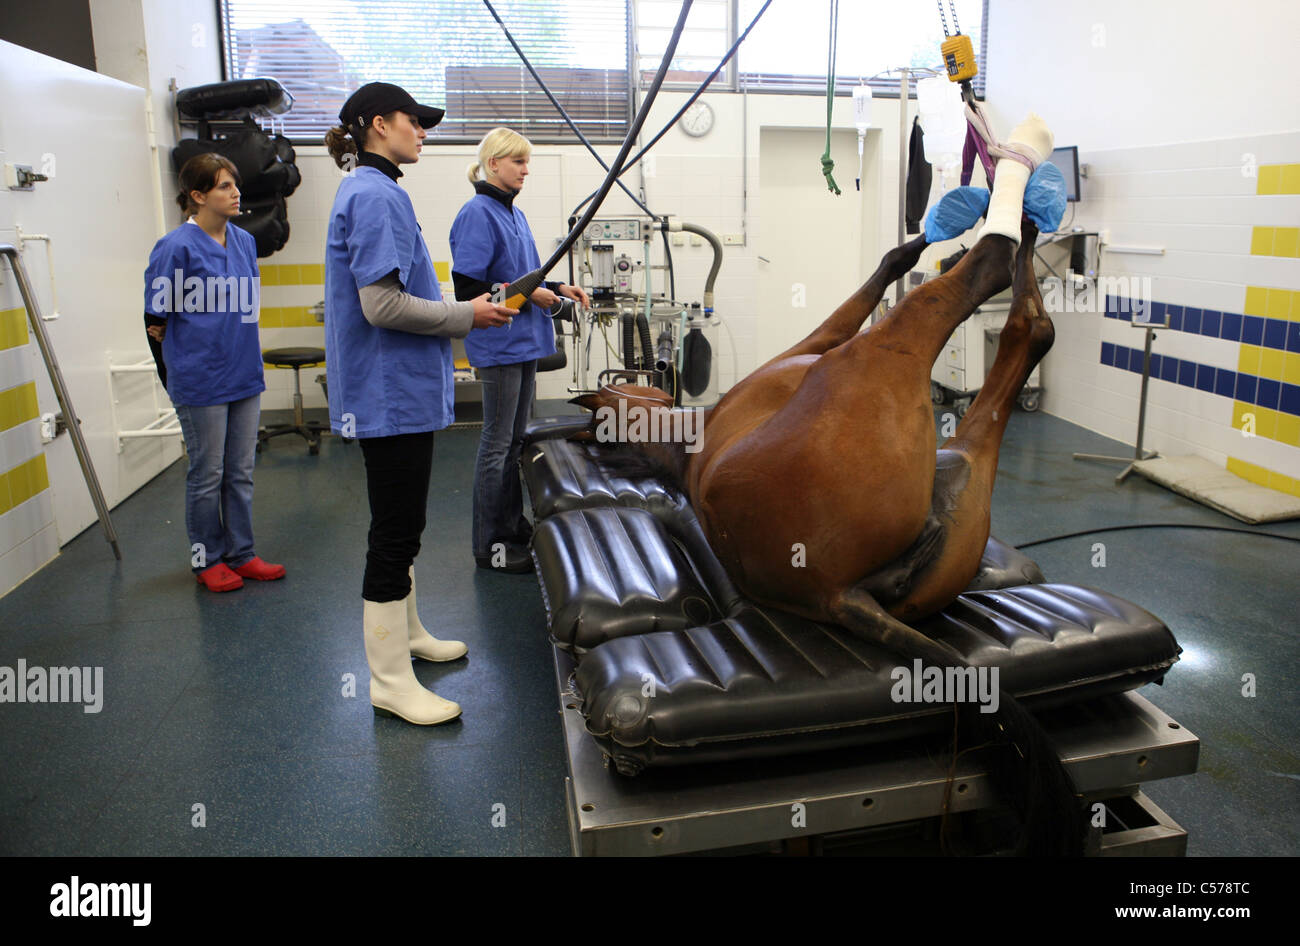 An anesthetized horse is being laid on an operating table - Stock Image